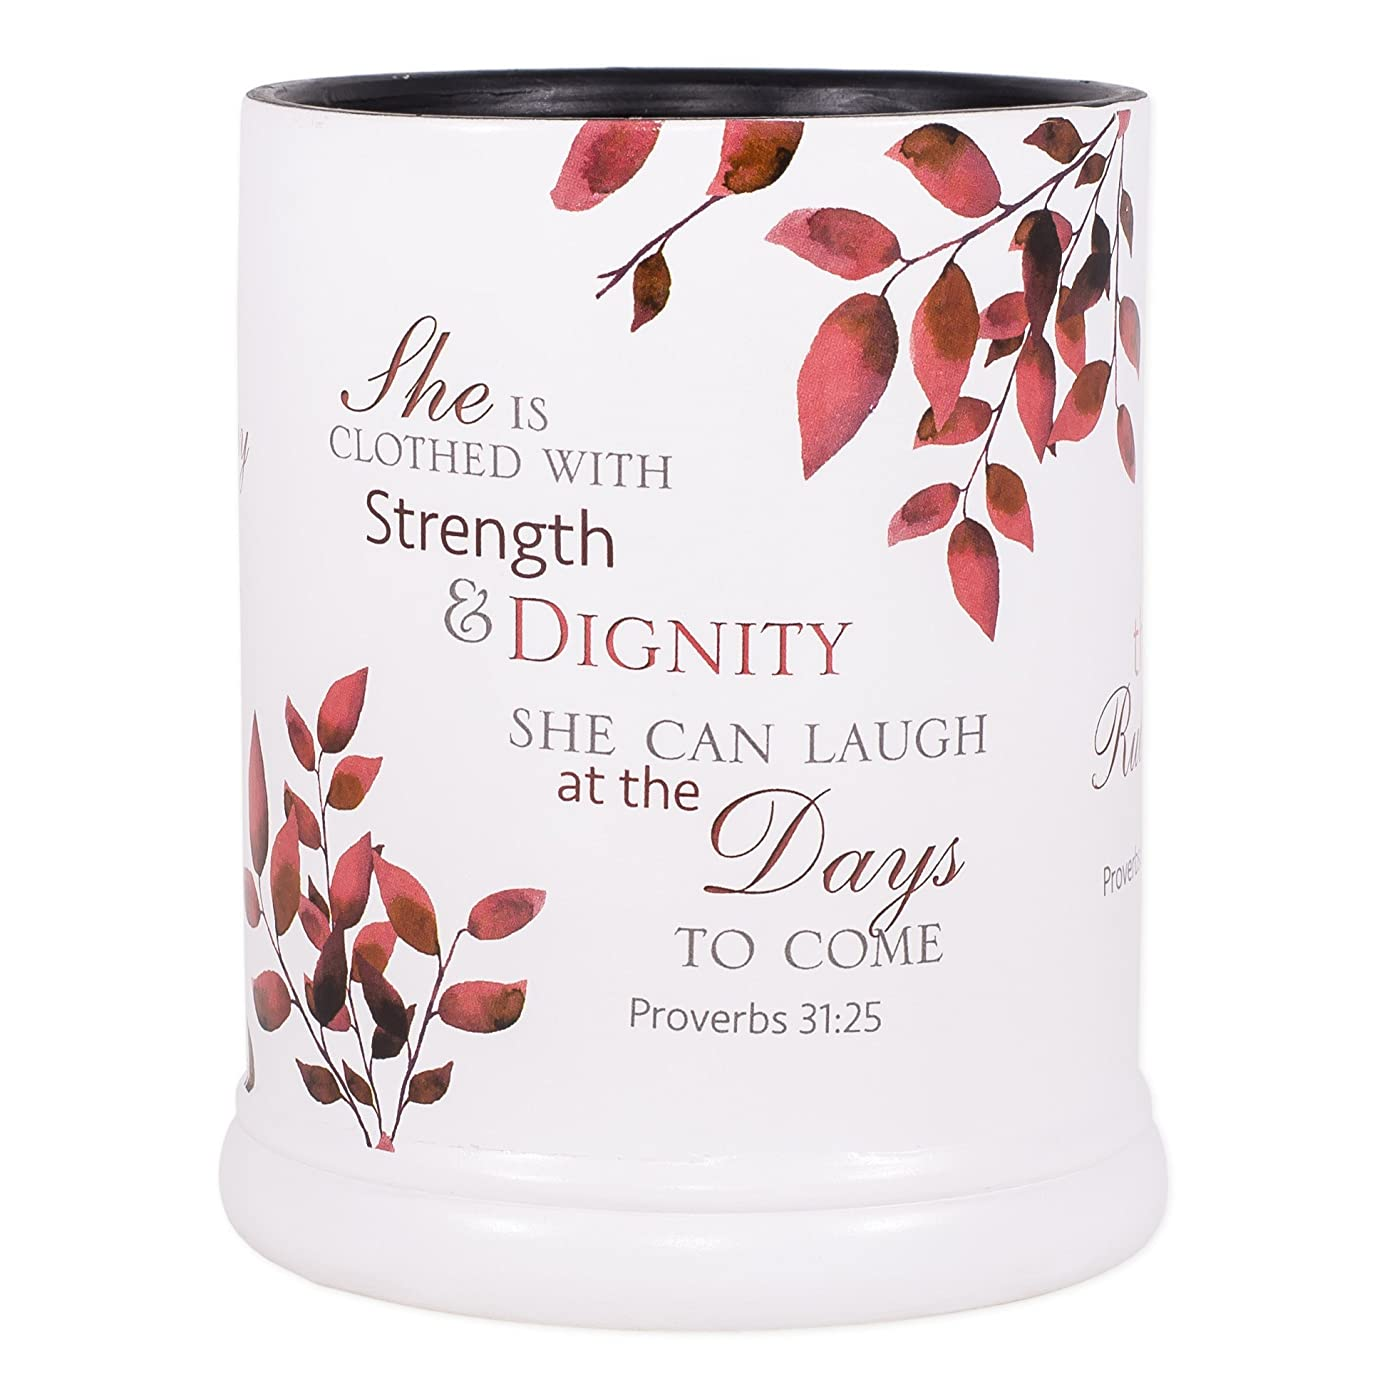 Elanze Designs She is More Precious Than Rubies Proverbs 31 Woman Ceramic Stone Electric Large Jar Candle Warmer